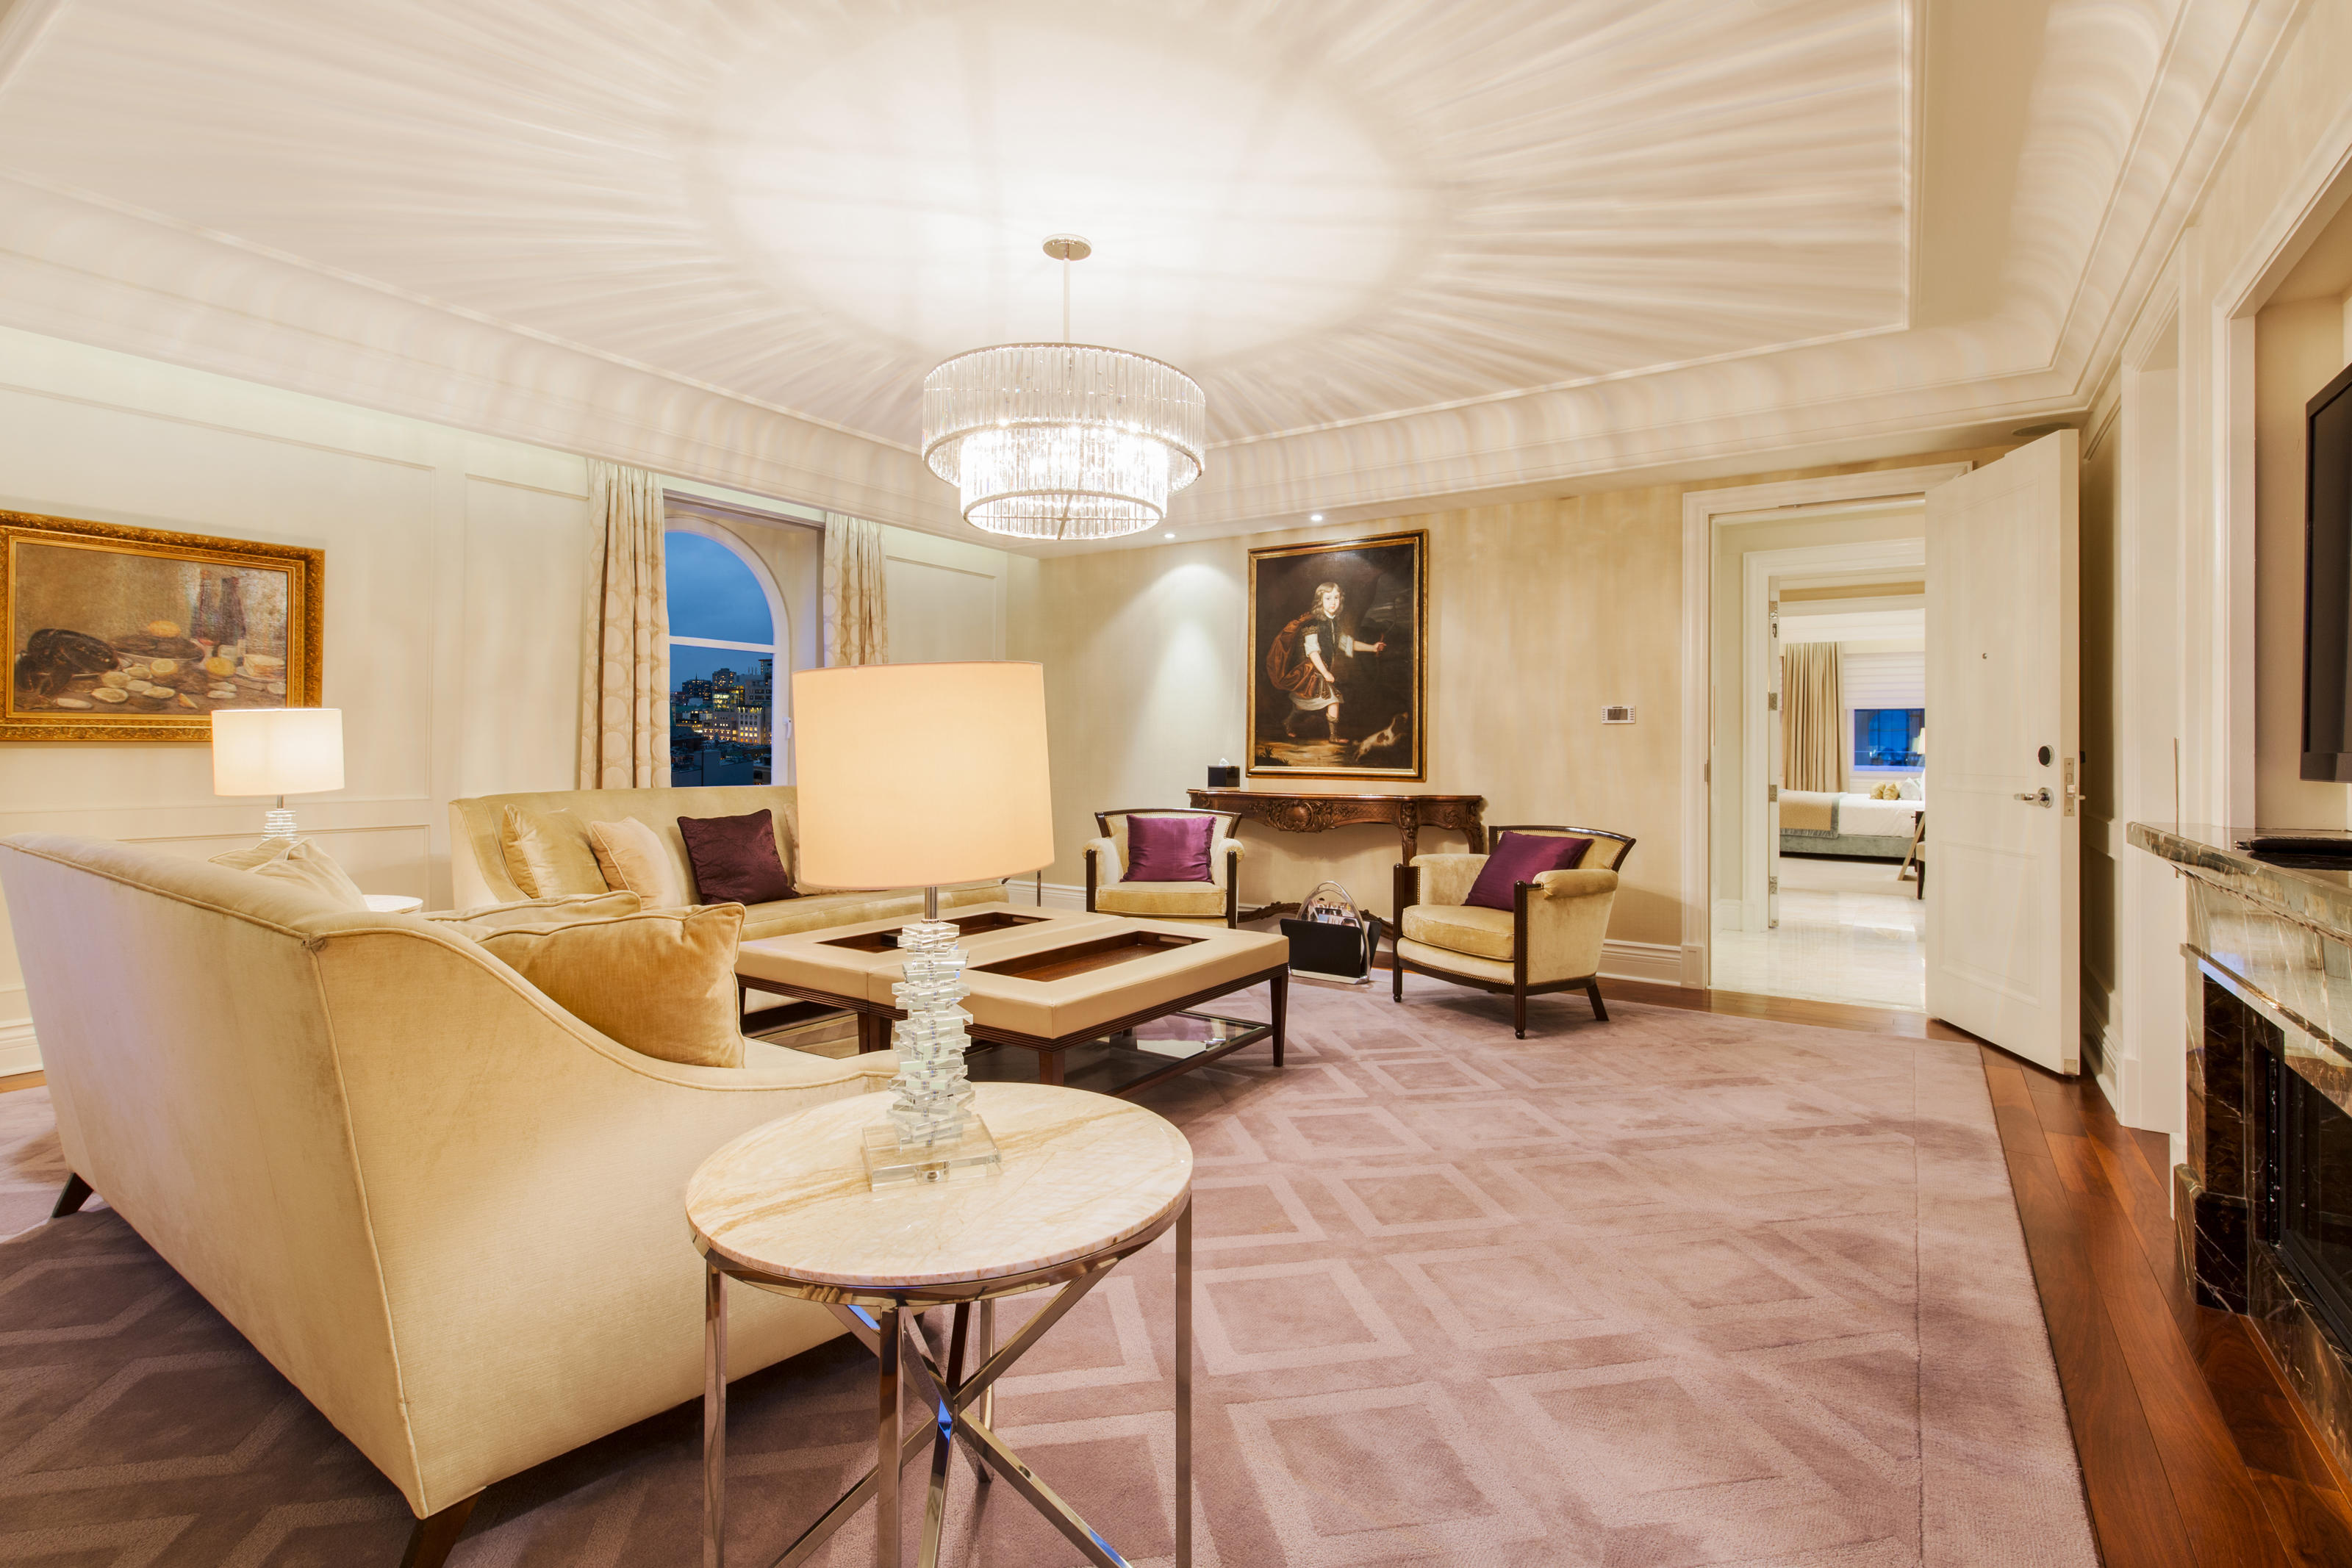 The Ritz-Carlton, Montreal à Montreal: True to its name, this stunning space reigns supreme across 12 distinctive rooms and over 3,435 square feet, making it one of the largest suites in Montréal. Beyond the stately entrance foyer, an impressive living room aff ords the opportunity to entertain with garden views, an LCD TV and a cozy fi replace. A separate dining room can accommodate up to 12 guests for a memorable meal or an inspiring meeting.